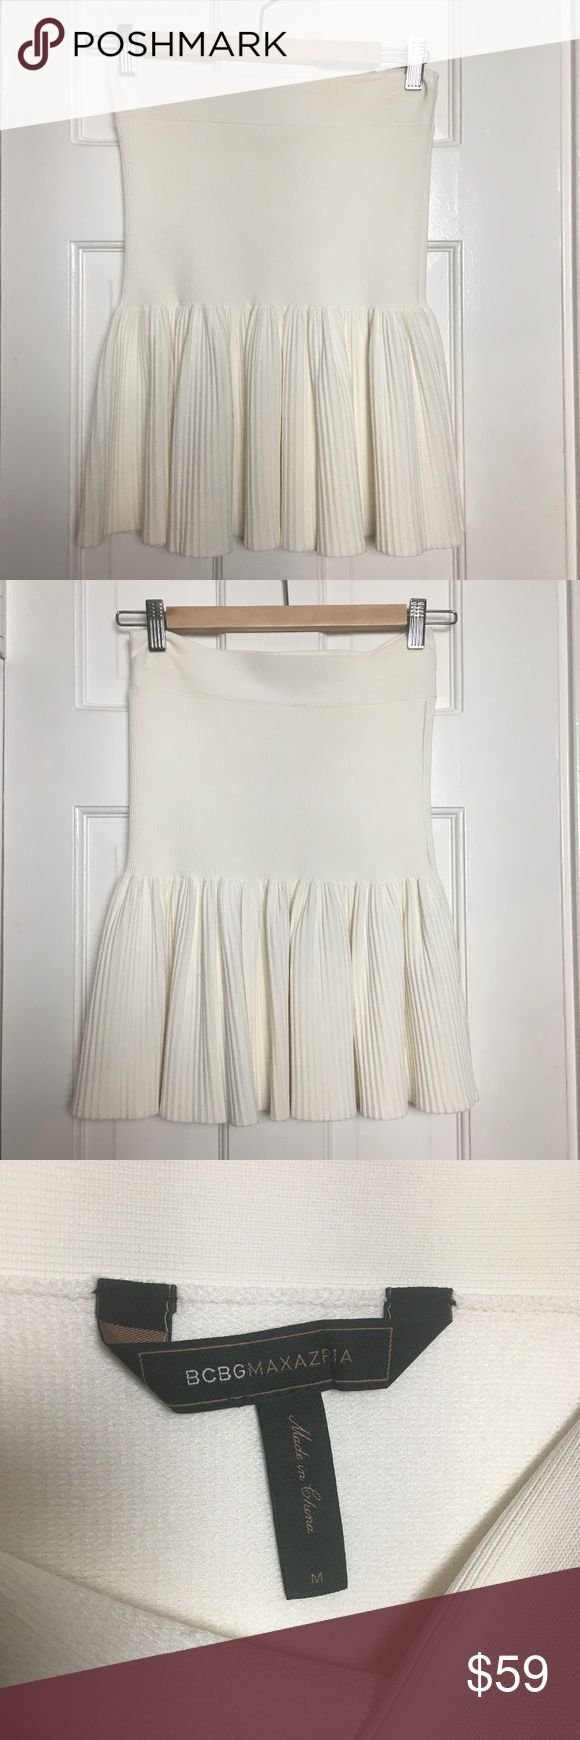 BCBG MaxAzria off white jersey mini skirt sz M BCBG MaxAzria off white jersey mini skirt sz M Brand: BCBG MaxAzria Made In: China Size: M Fit: fitted, stretch Waist: 25 stretch Hips: 32 stretch Length: 18 Material: rayon, nylon, spandex Color: off white Condition: Excellent #coxycloset #womensskirt #skirt #miniskirt #BCBGMaxAzria #jersey #pleated #white #casual #sexy #cocktail #evening #party #spring #summer BCBGMaxAzria Skirts Mini